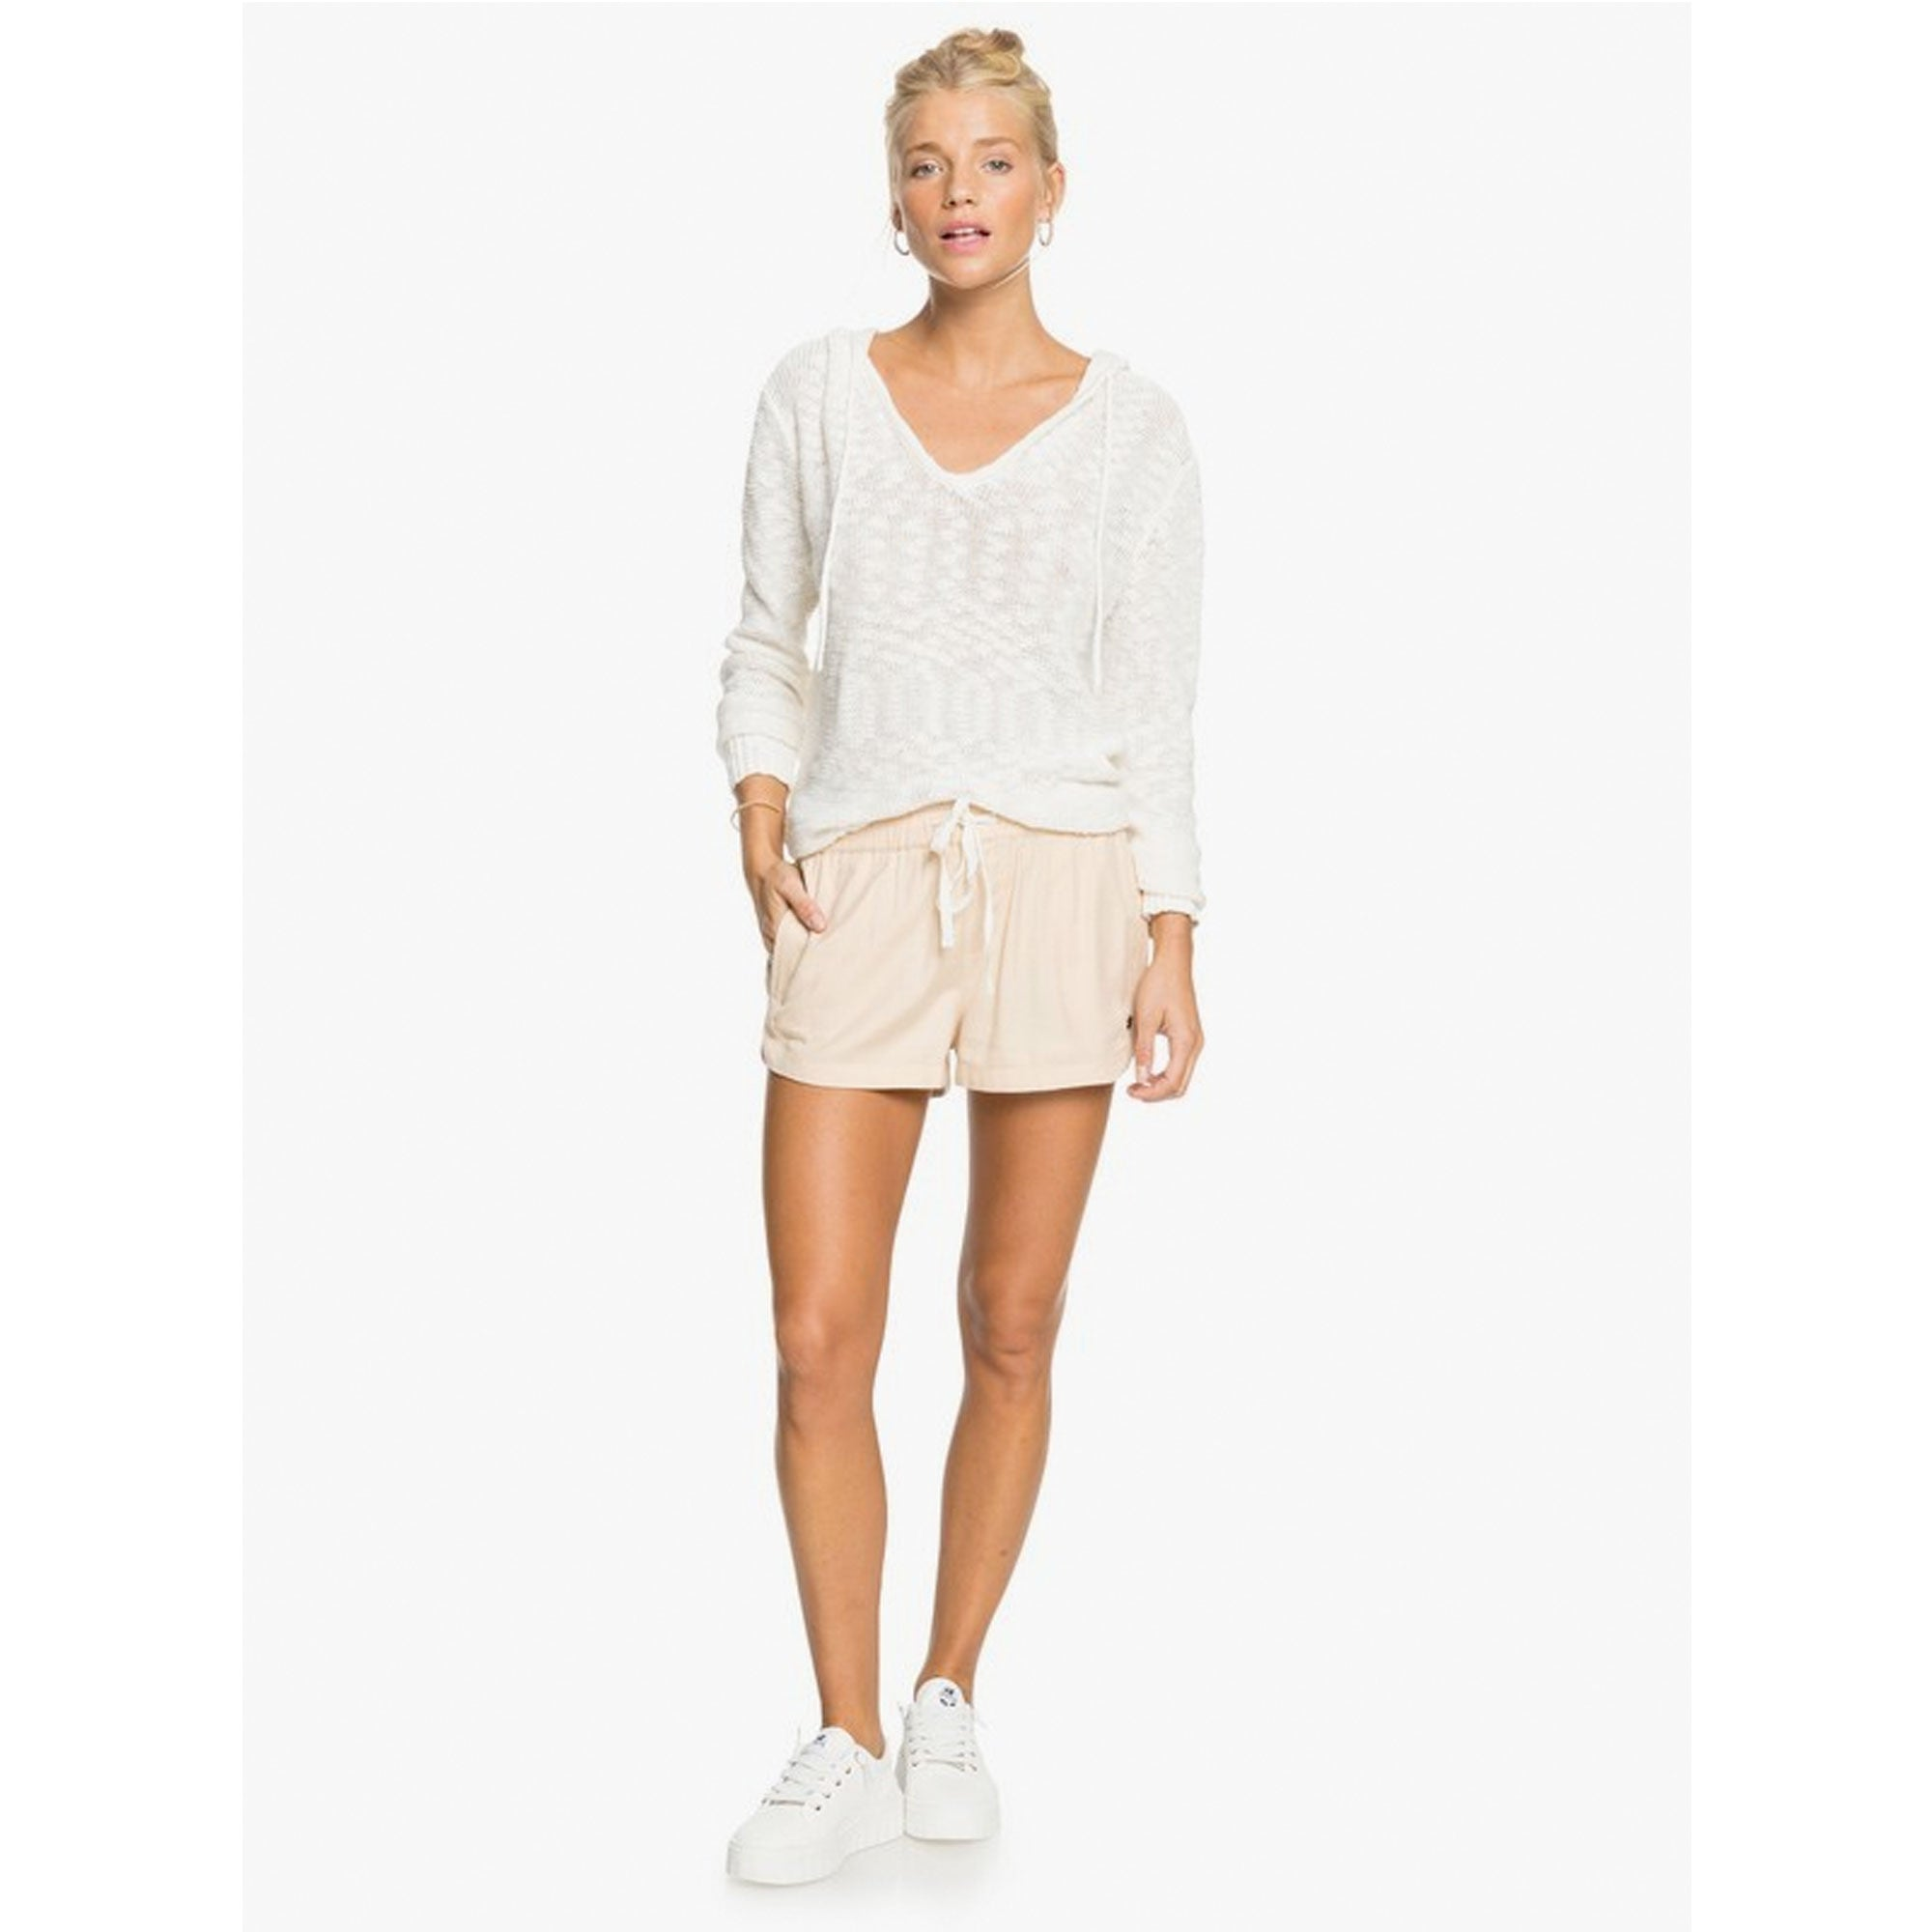 Roxy New Impossible Love Viscose Women's Shorts